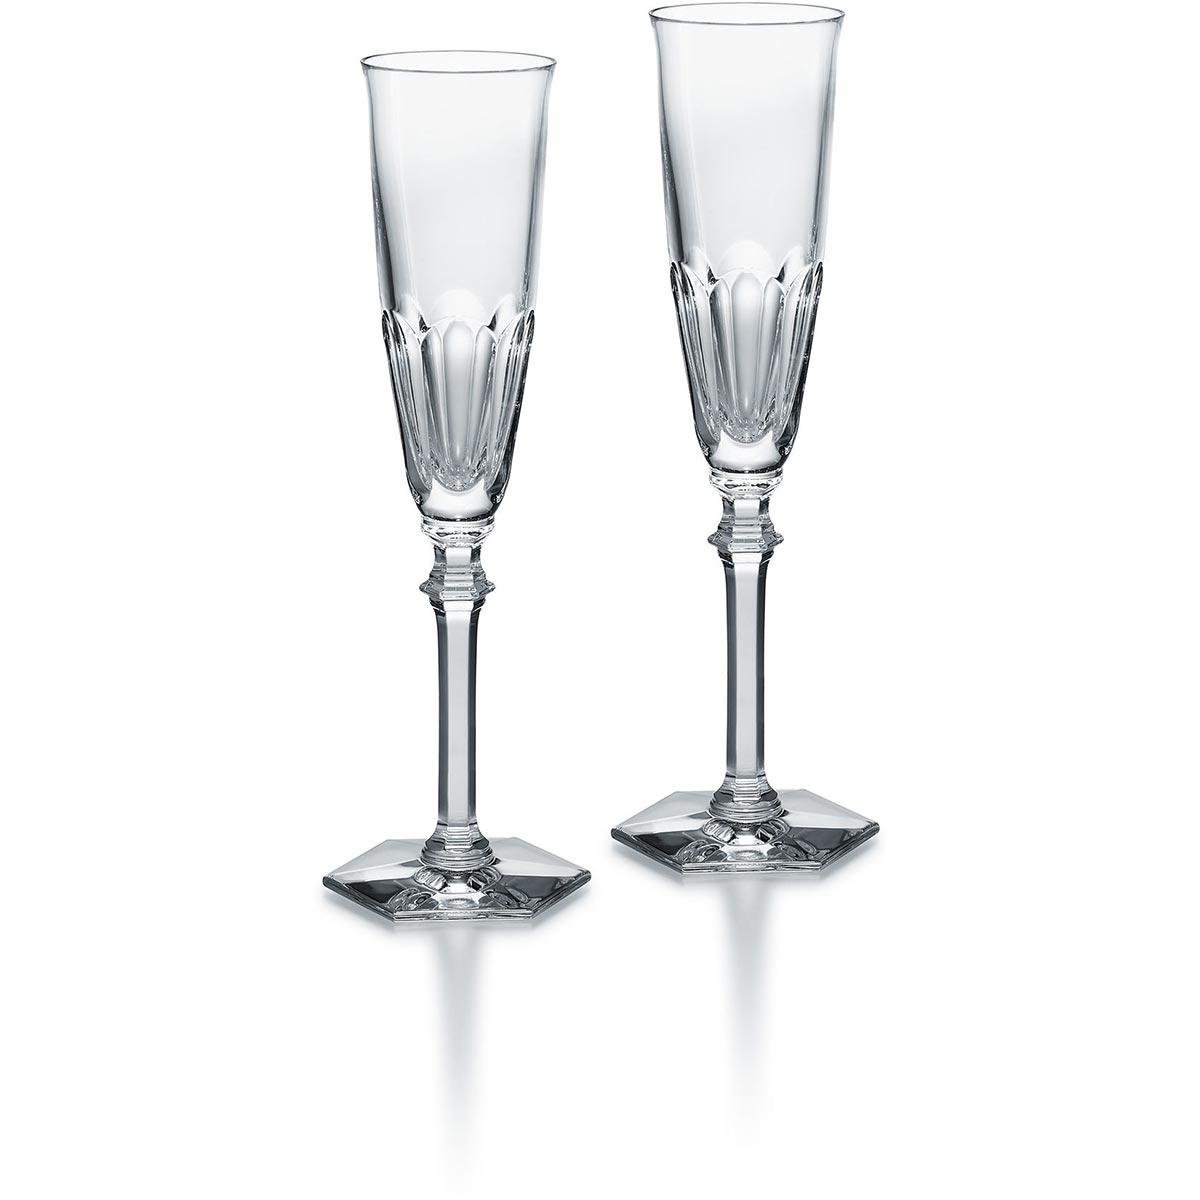 Set of 2 champagne flutes clear<br>17cl, H: 24.5cm, D: 5.8cm<br>Harcourt EVE